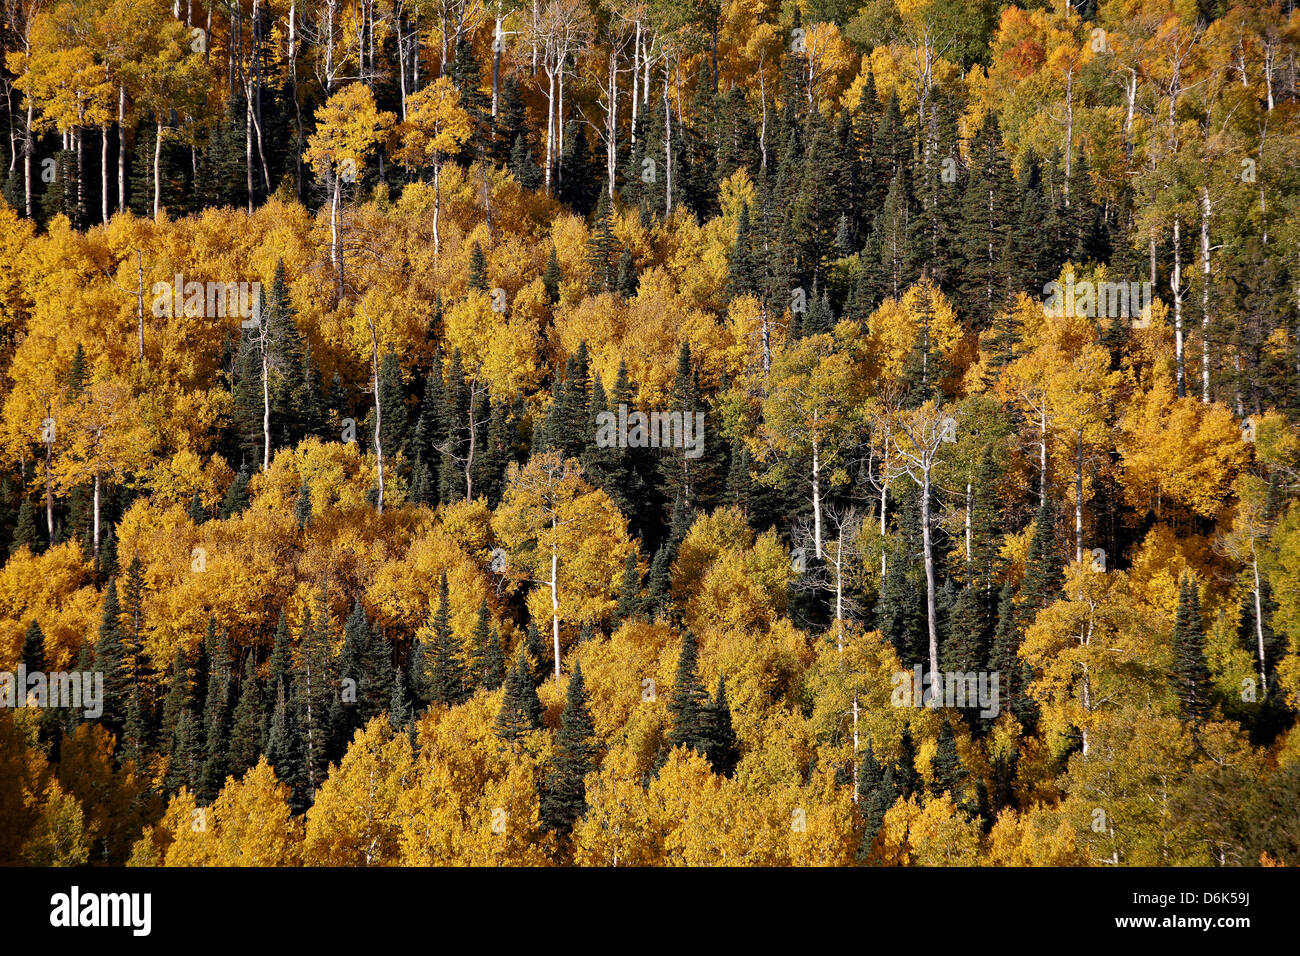 Yellow aspens among evergreens in the fall, Uncompahgre National Forest, Colorado, United States of America, North - Stock Image